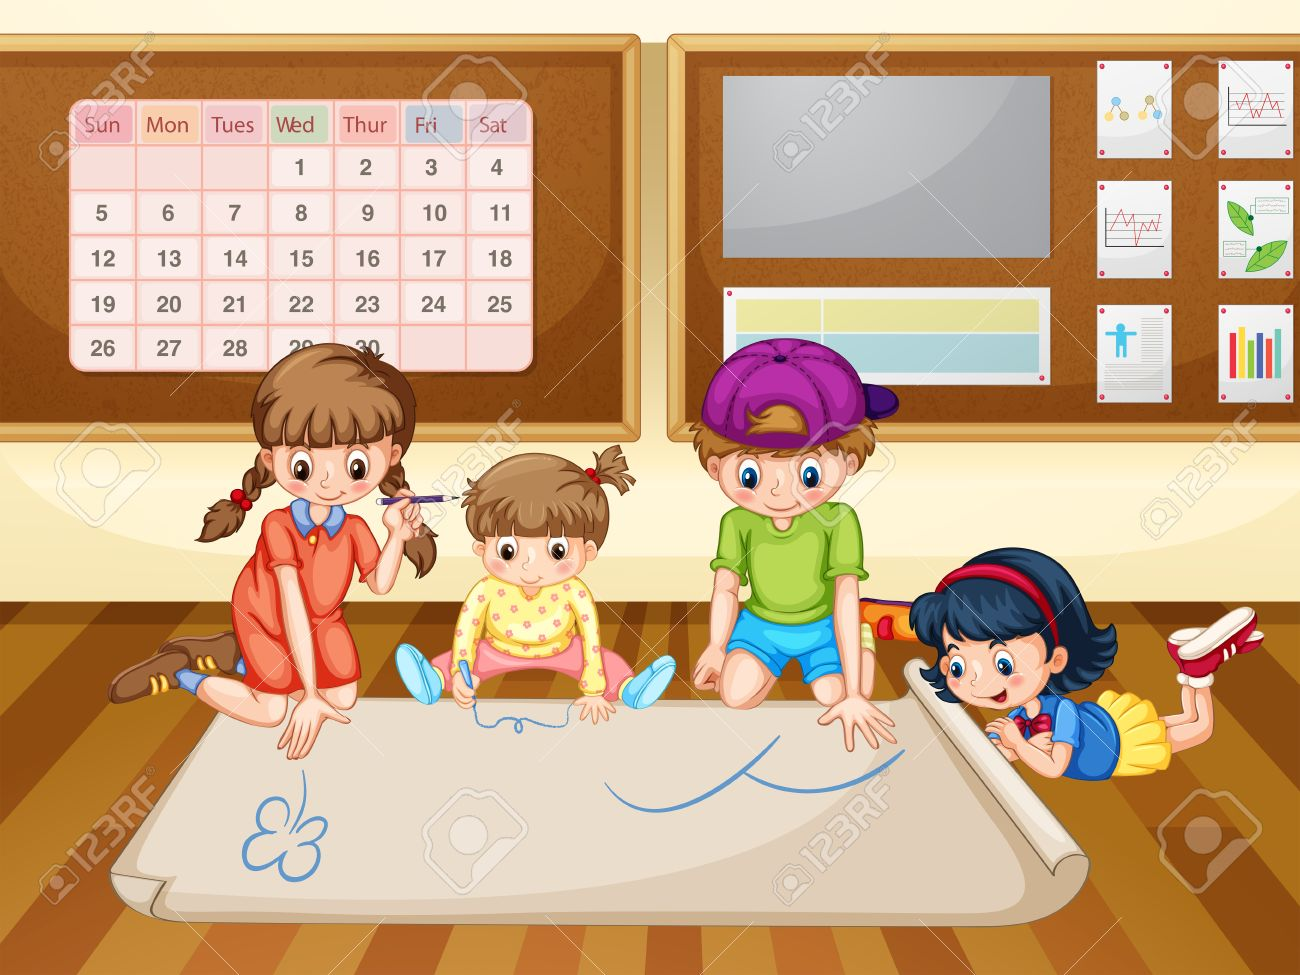 1300x975 Children Drawing On Paper In Classroom Illustration Royalty Free